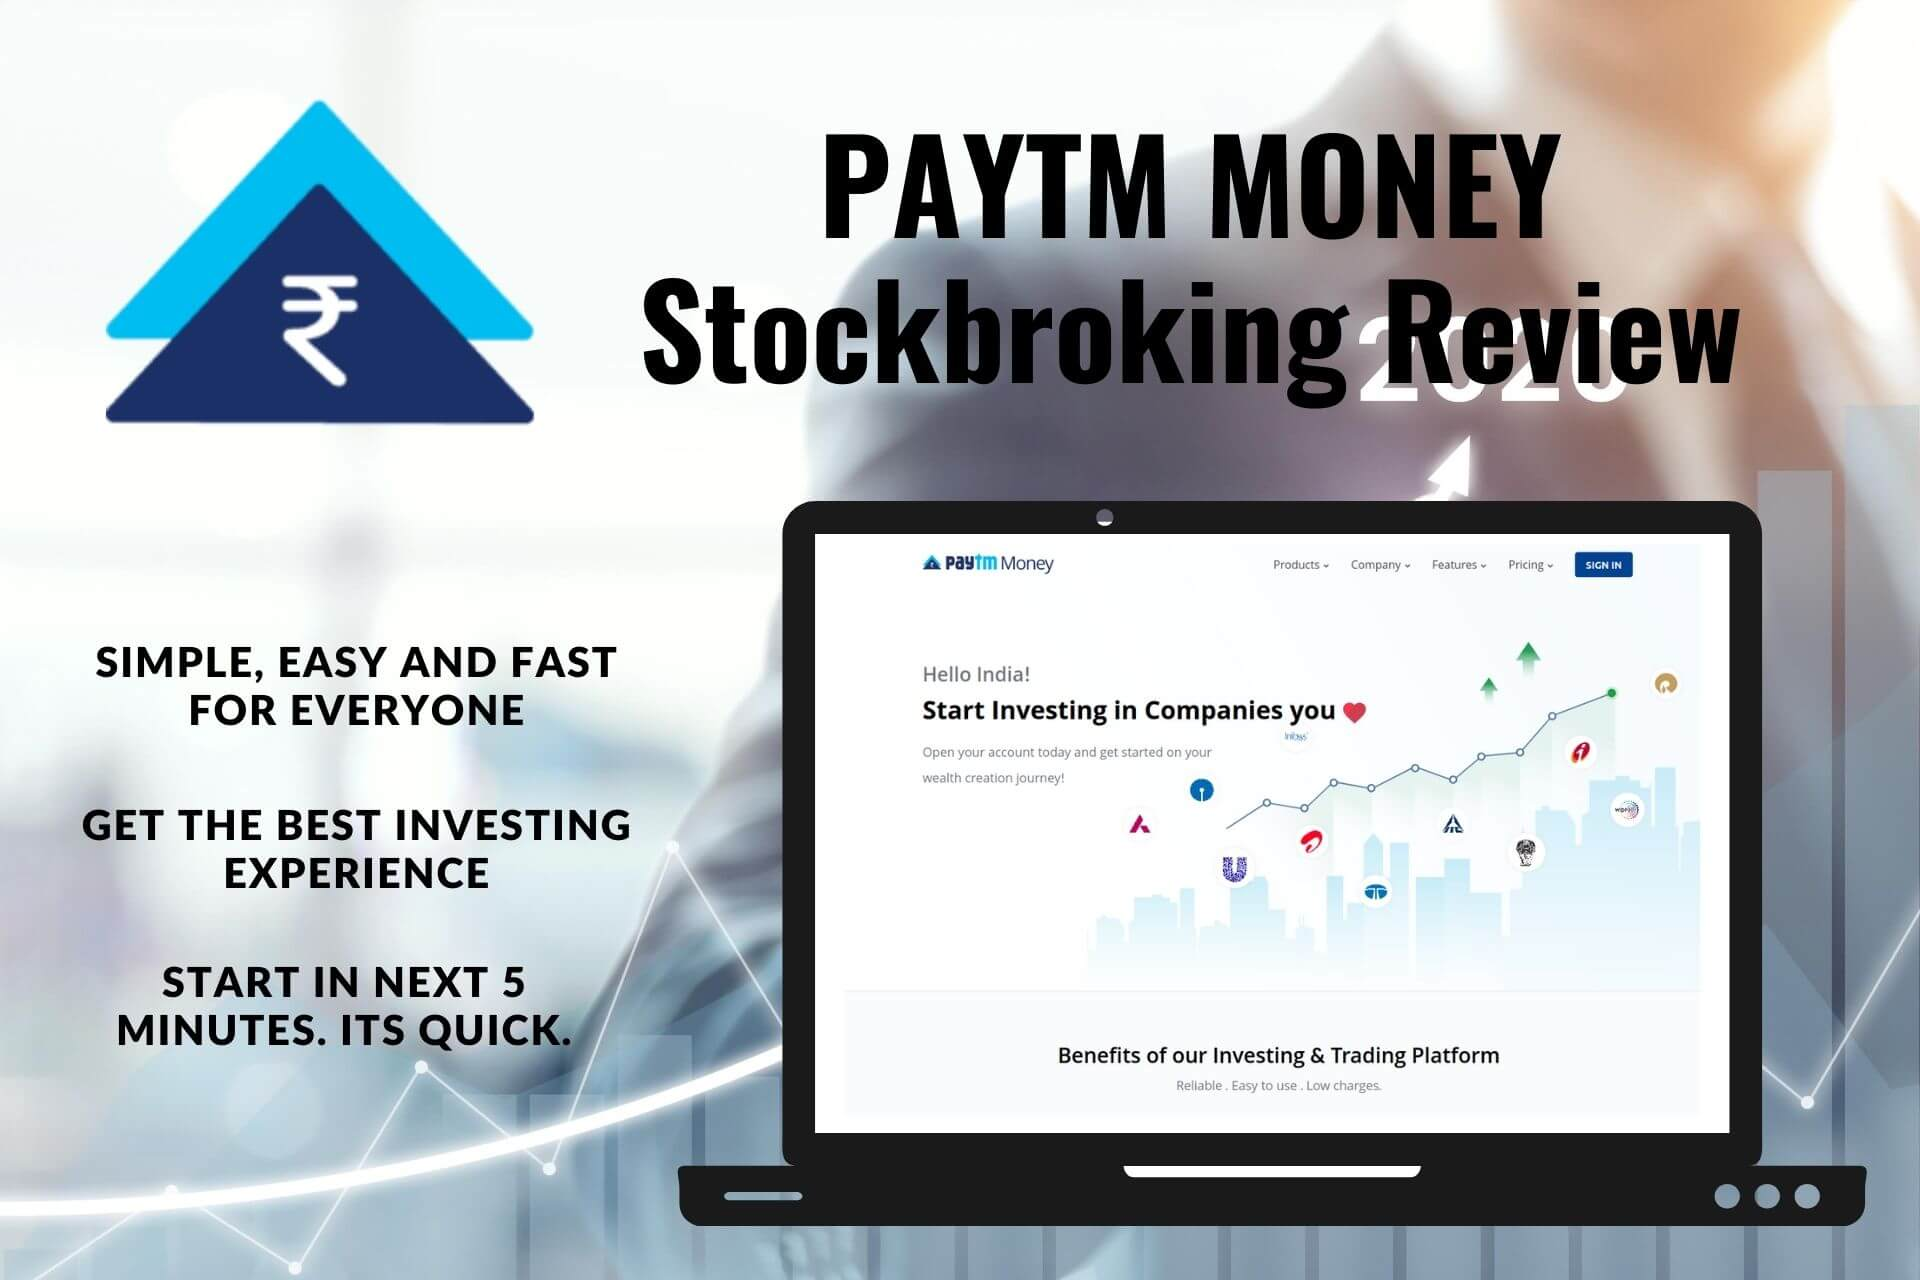 Paytm Money Stockbroking Review - Demat & Trading Account Charges Cover